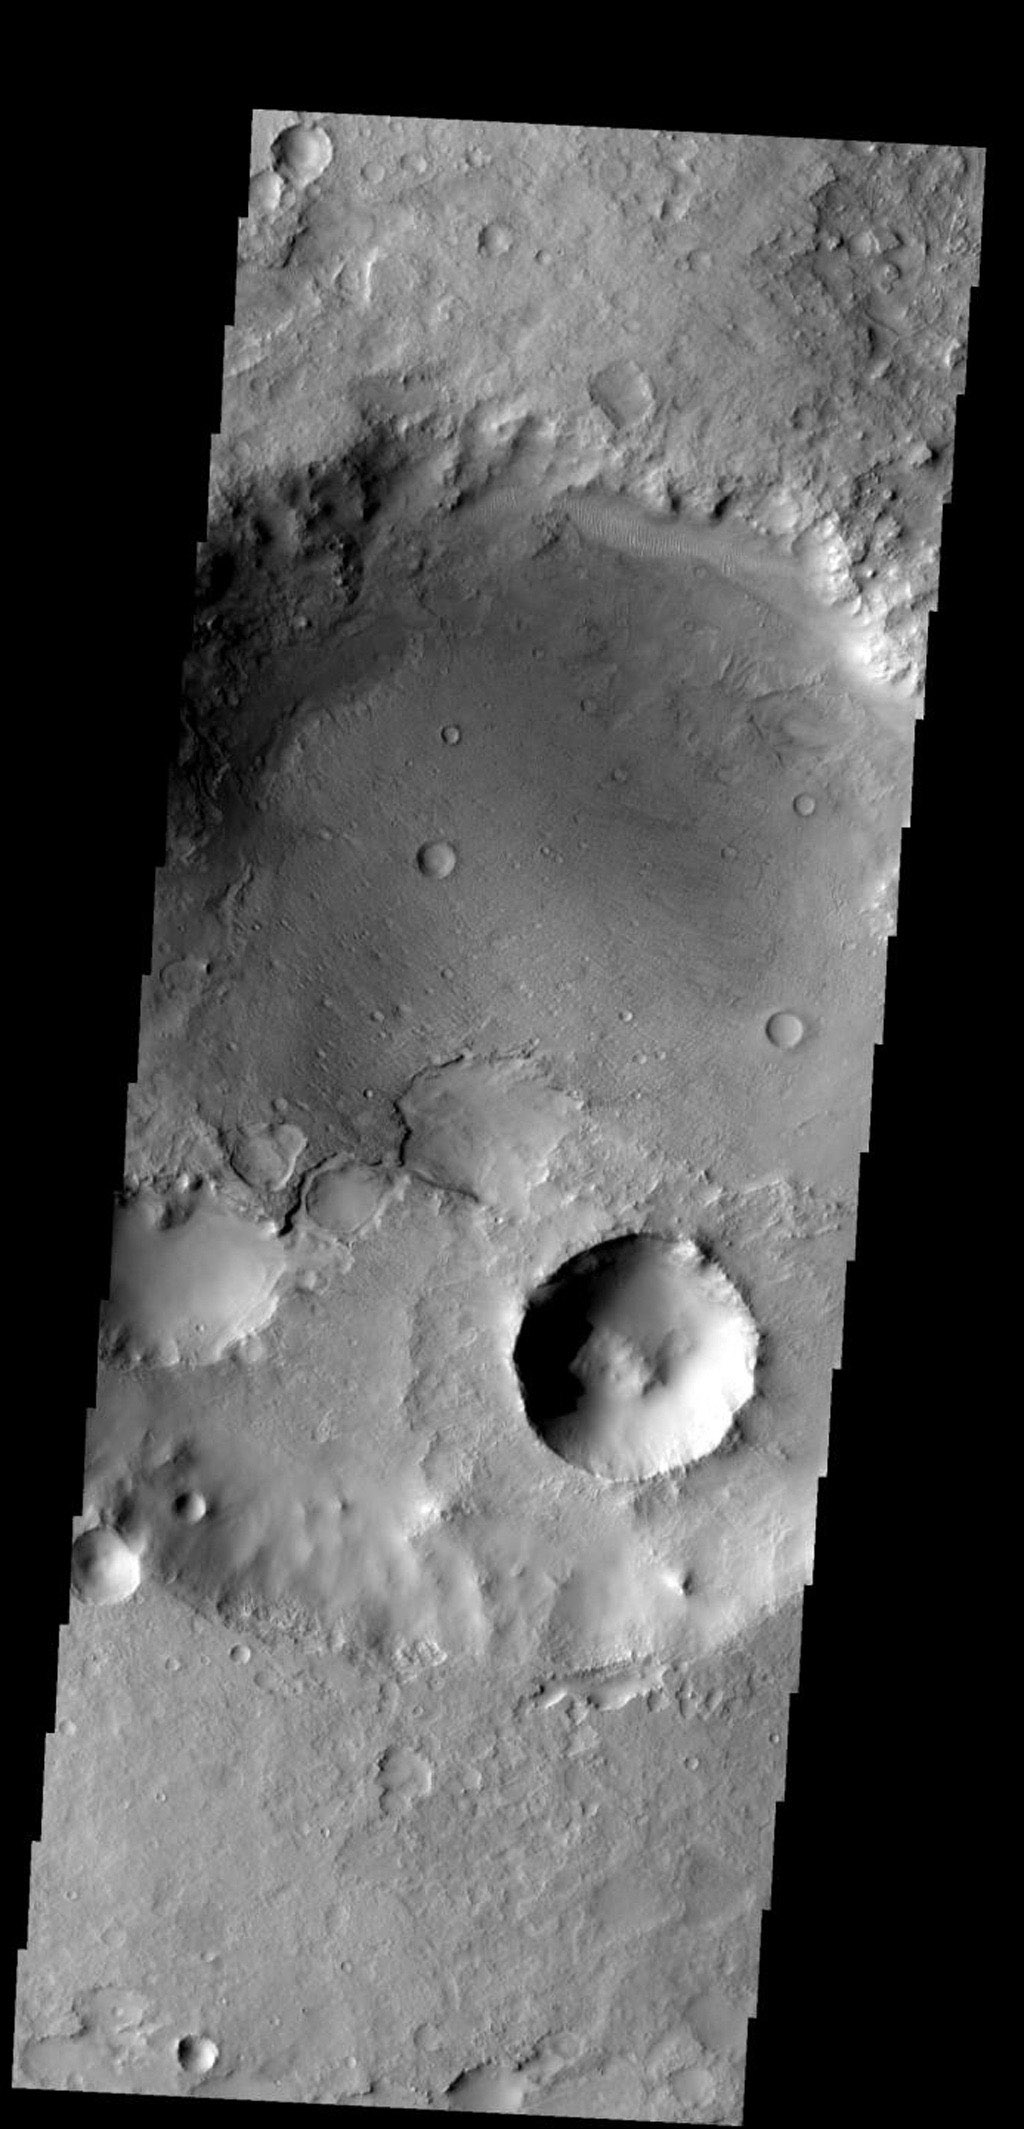 This crater, on the northern margin of Syrtis Major, has been filled with material that is now being removed on Mars as seen by NASA's Mars Odyssey spacecraft.